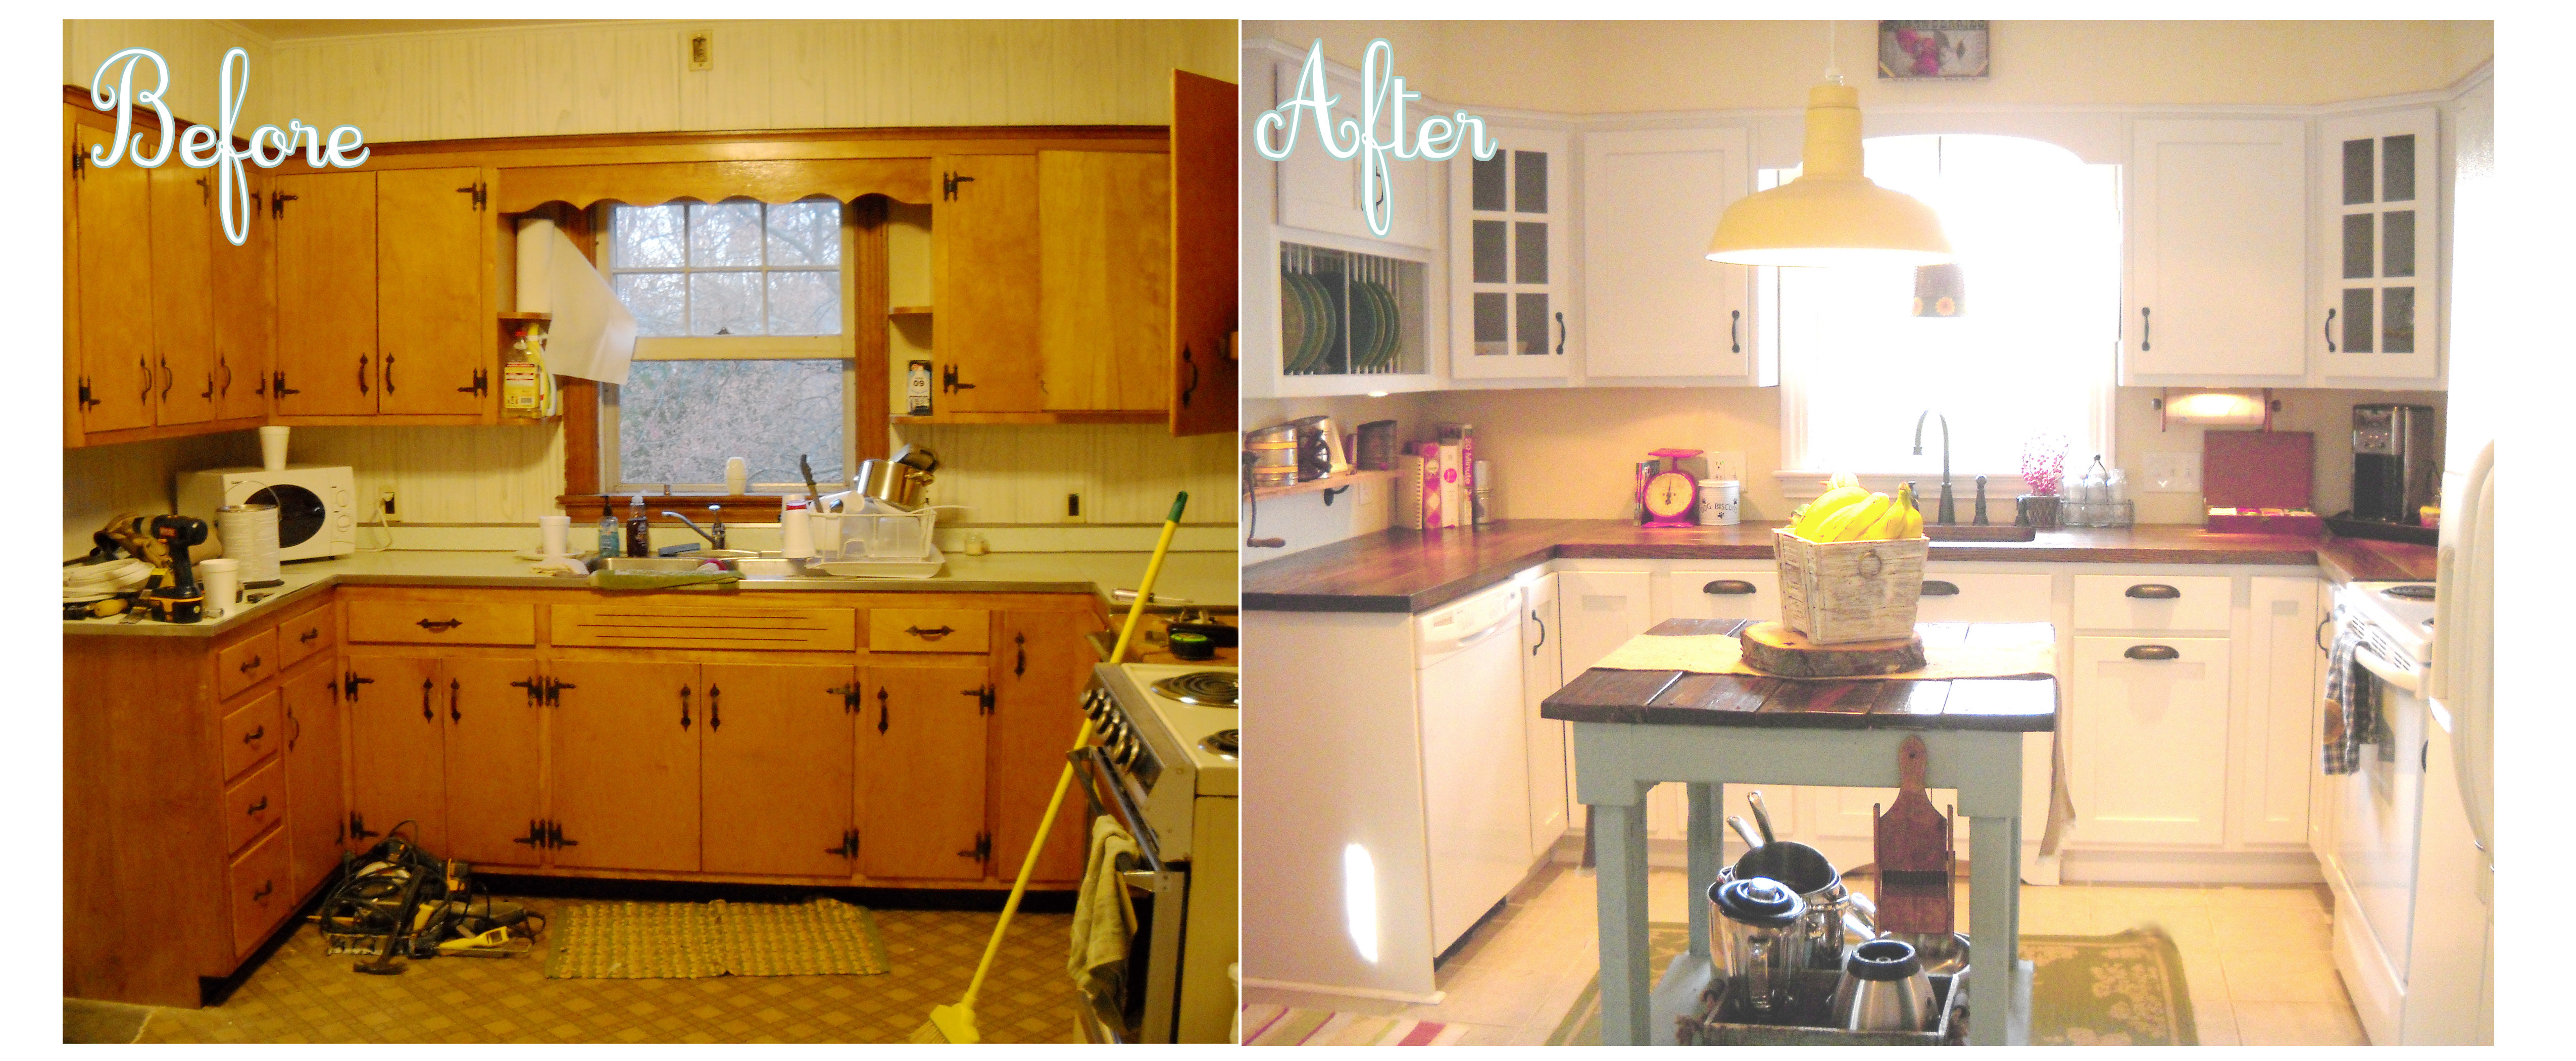 94+ Galley Kitchen Renovation Before And After  Galley Kitchen Remodel Before And After, Small